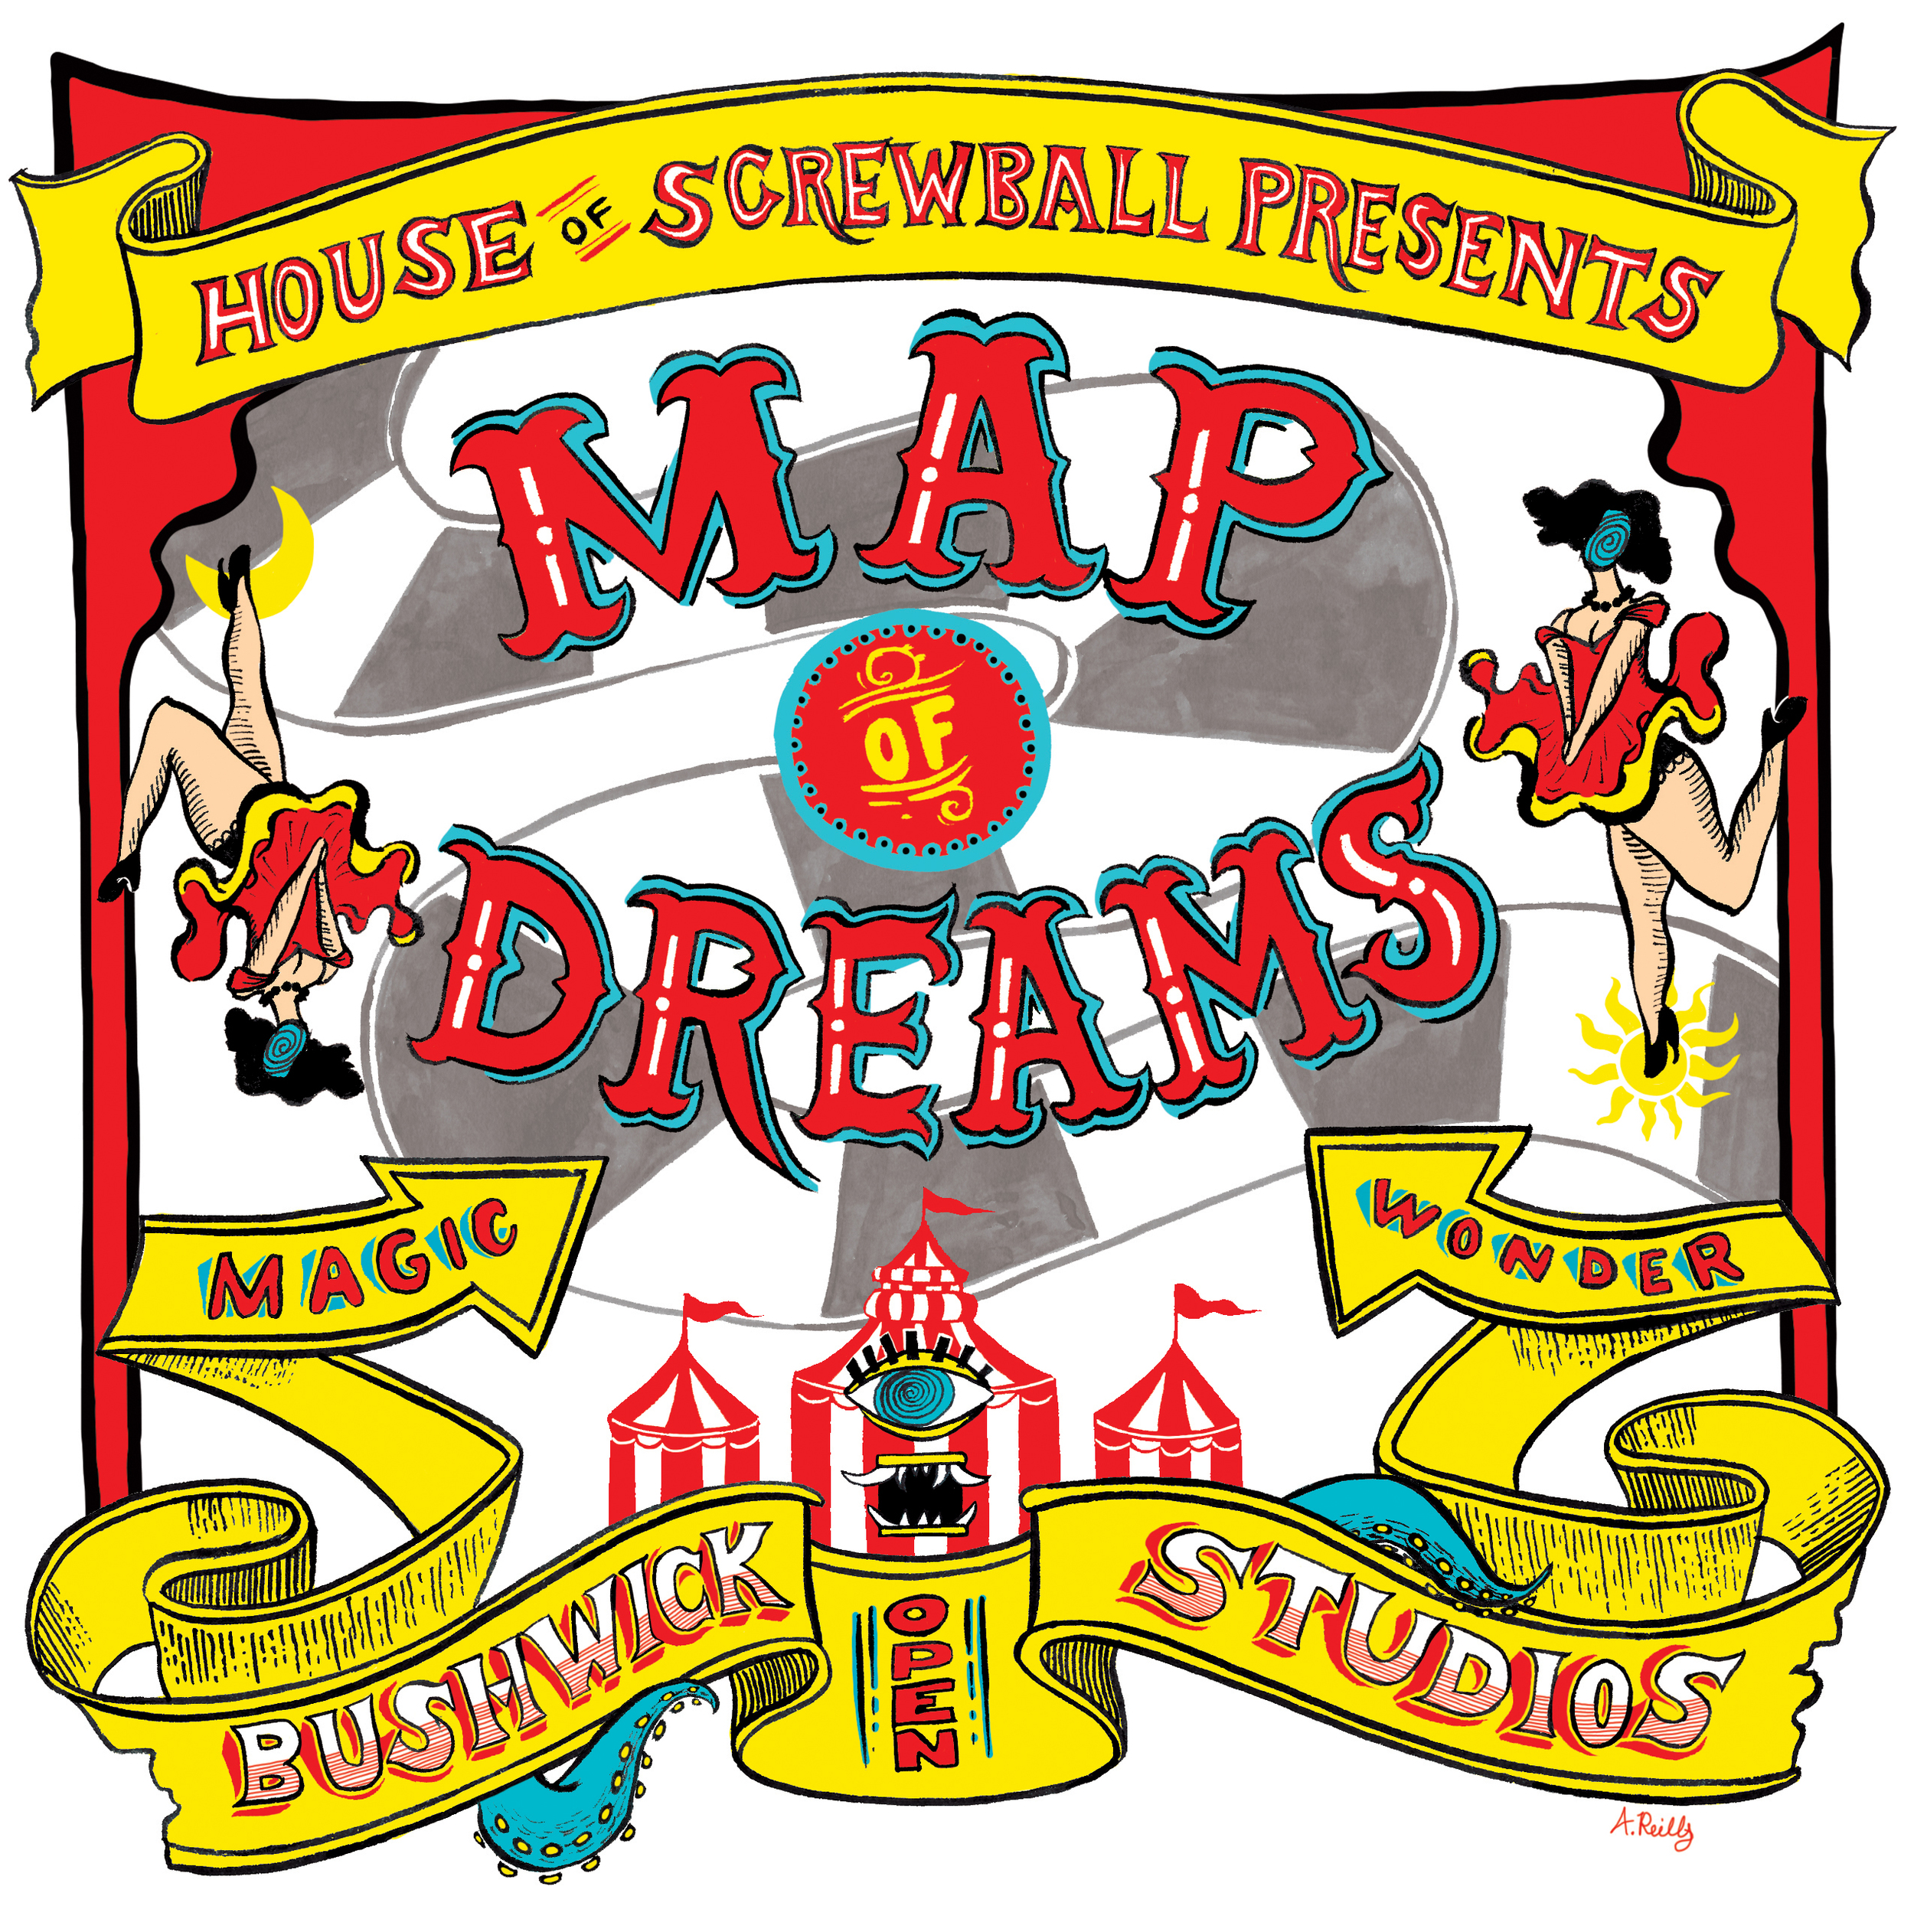 Map of Dreams Poster.  2015 Ink and digital   Client:House of Screwball / Bizarre Bushwick